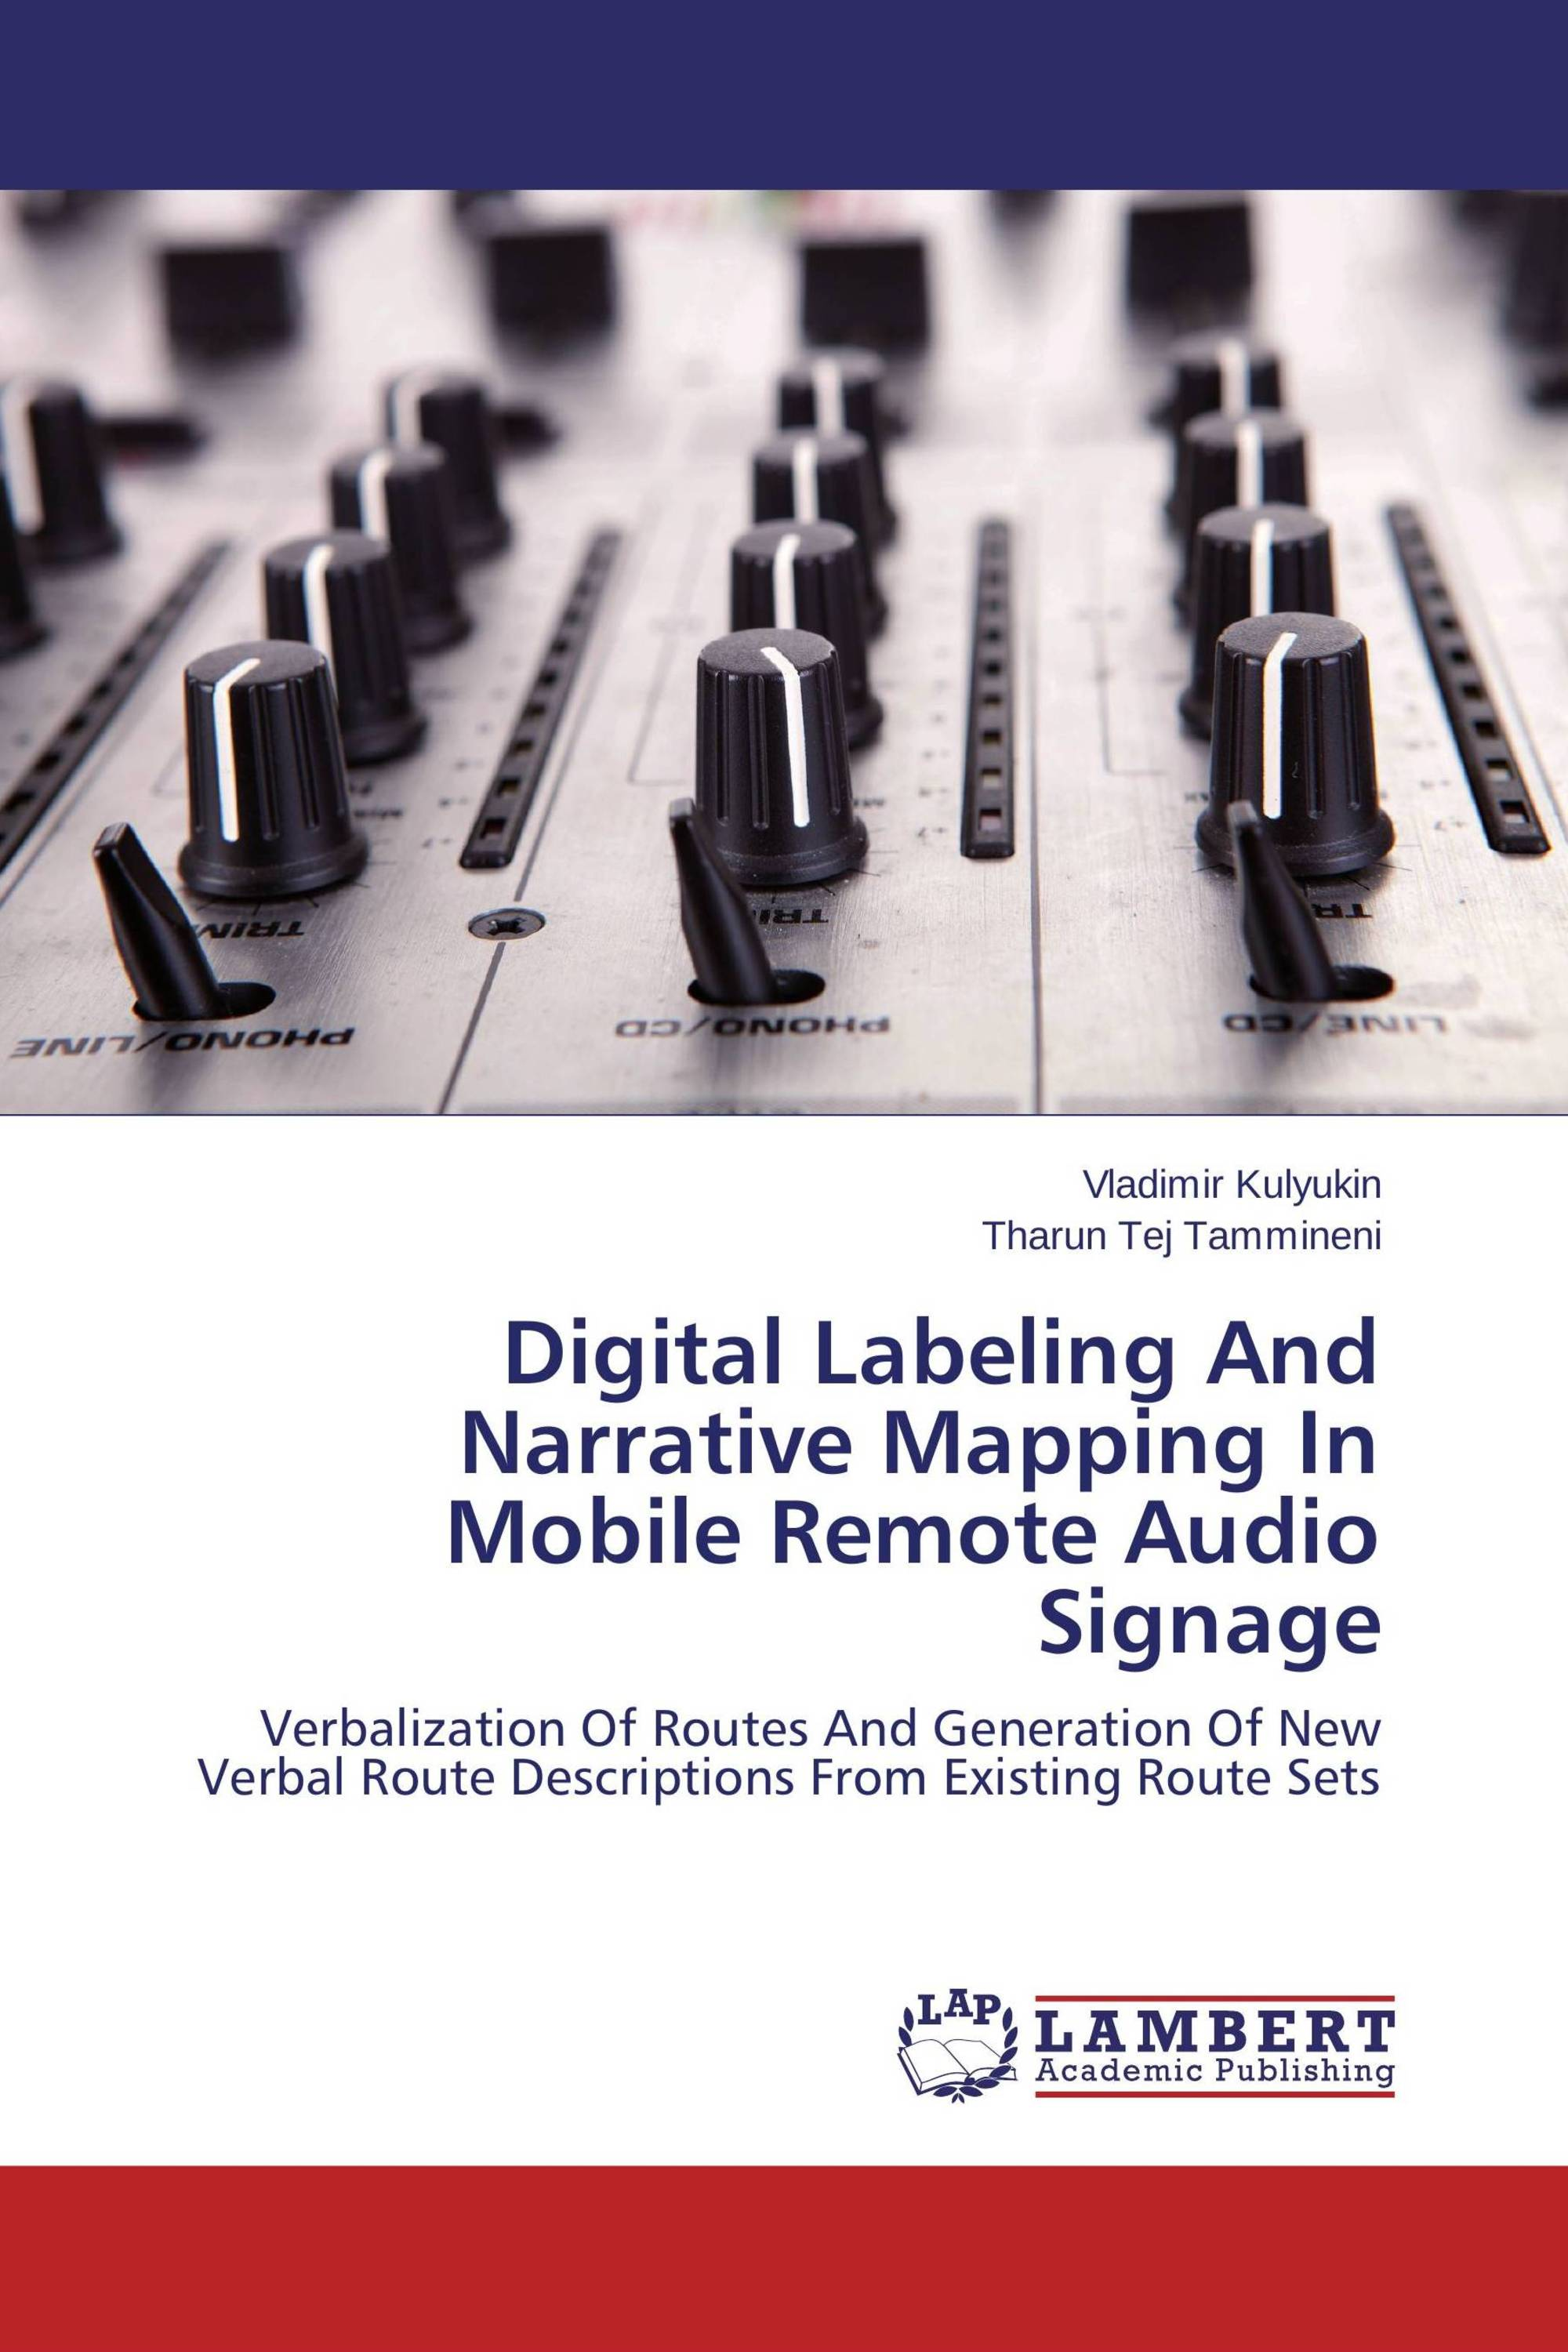 Digital Labeling And Narrative Mapping In Mobile Remote Audio Signage